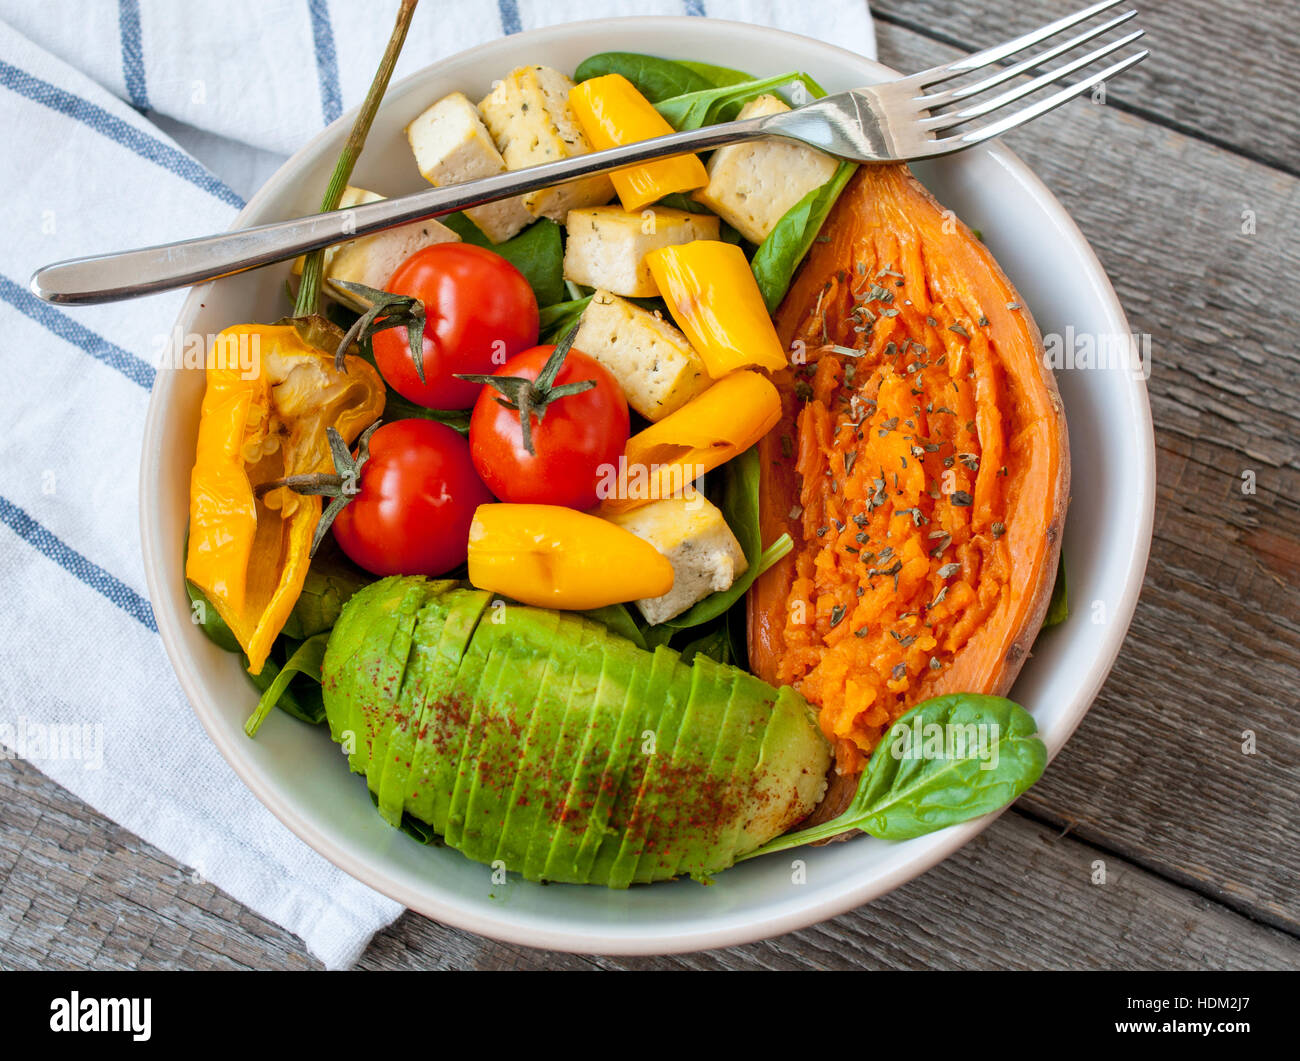 Salad with grilled vegetables: grilled sweet potatoes, tomatoes, avocados, spinach, tofu, pepper in a white bowl. Stock Photo